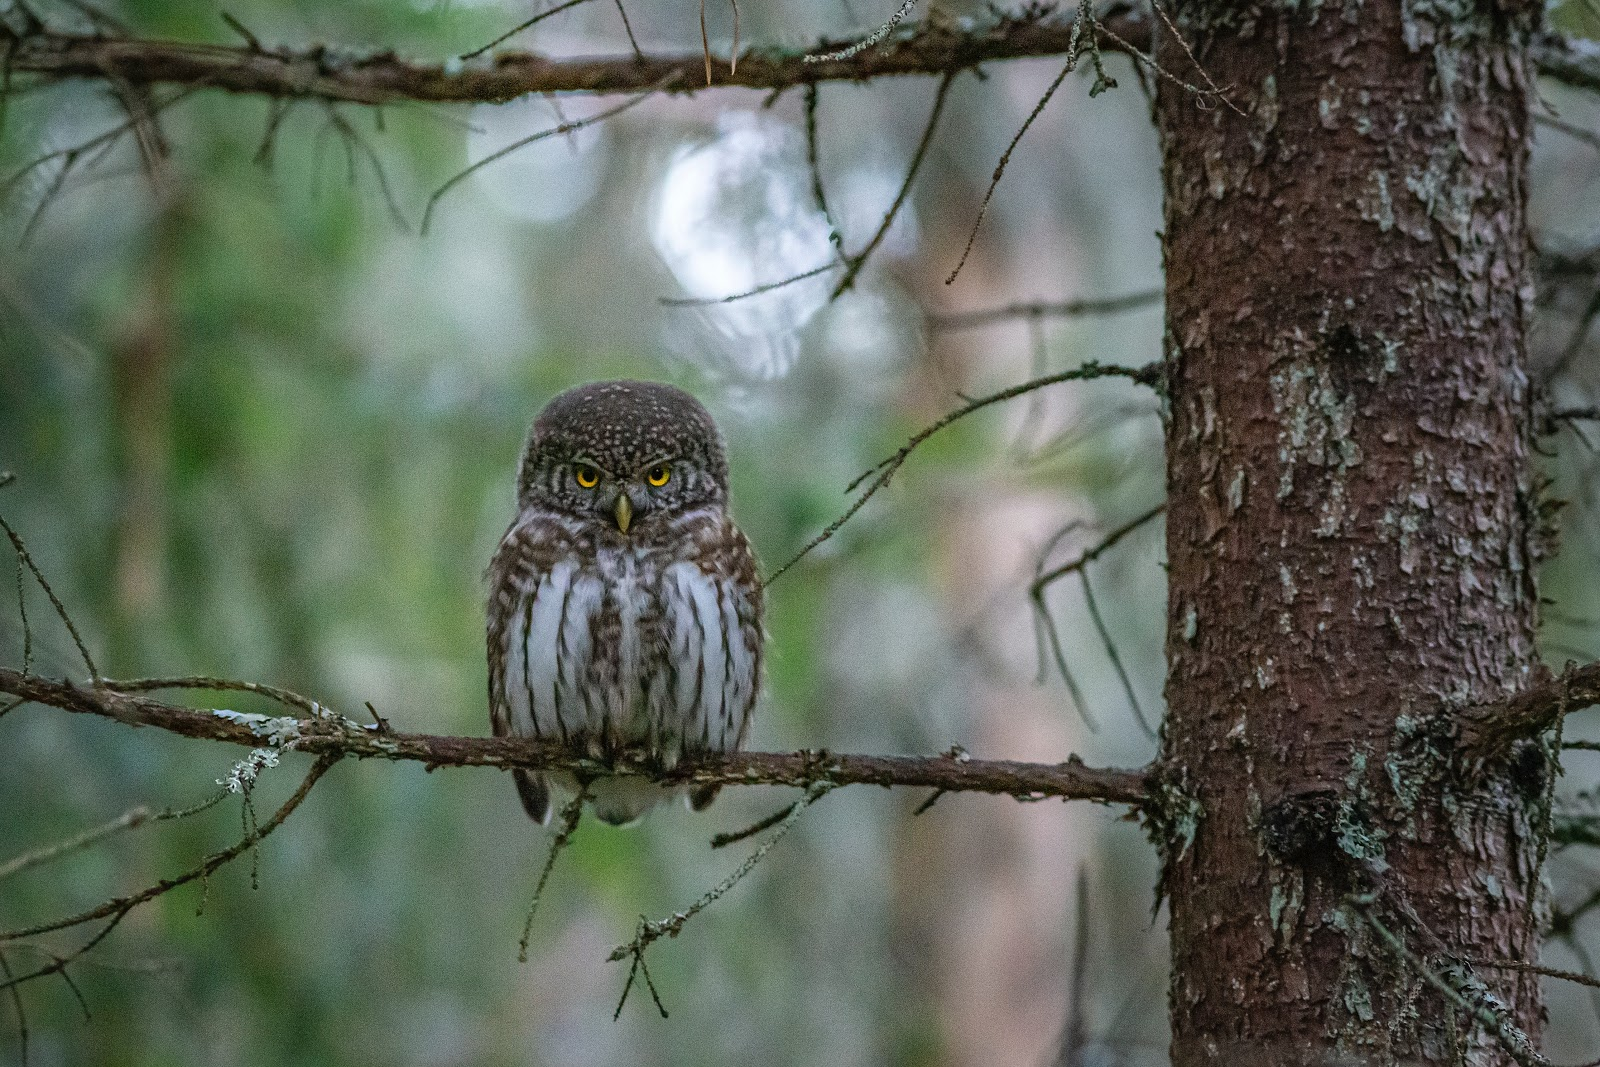 brown-owl-on-perched-on-brown-tree-branch-birds-images